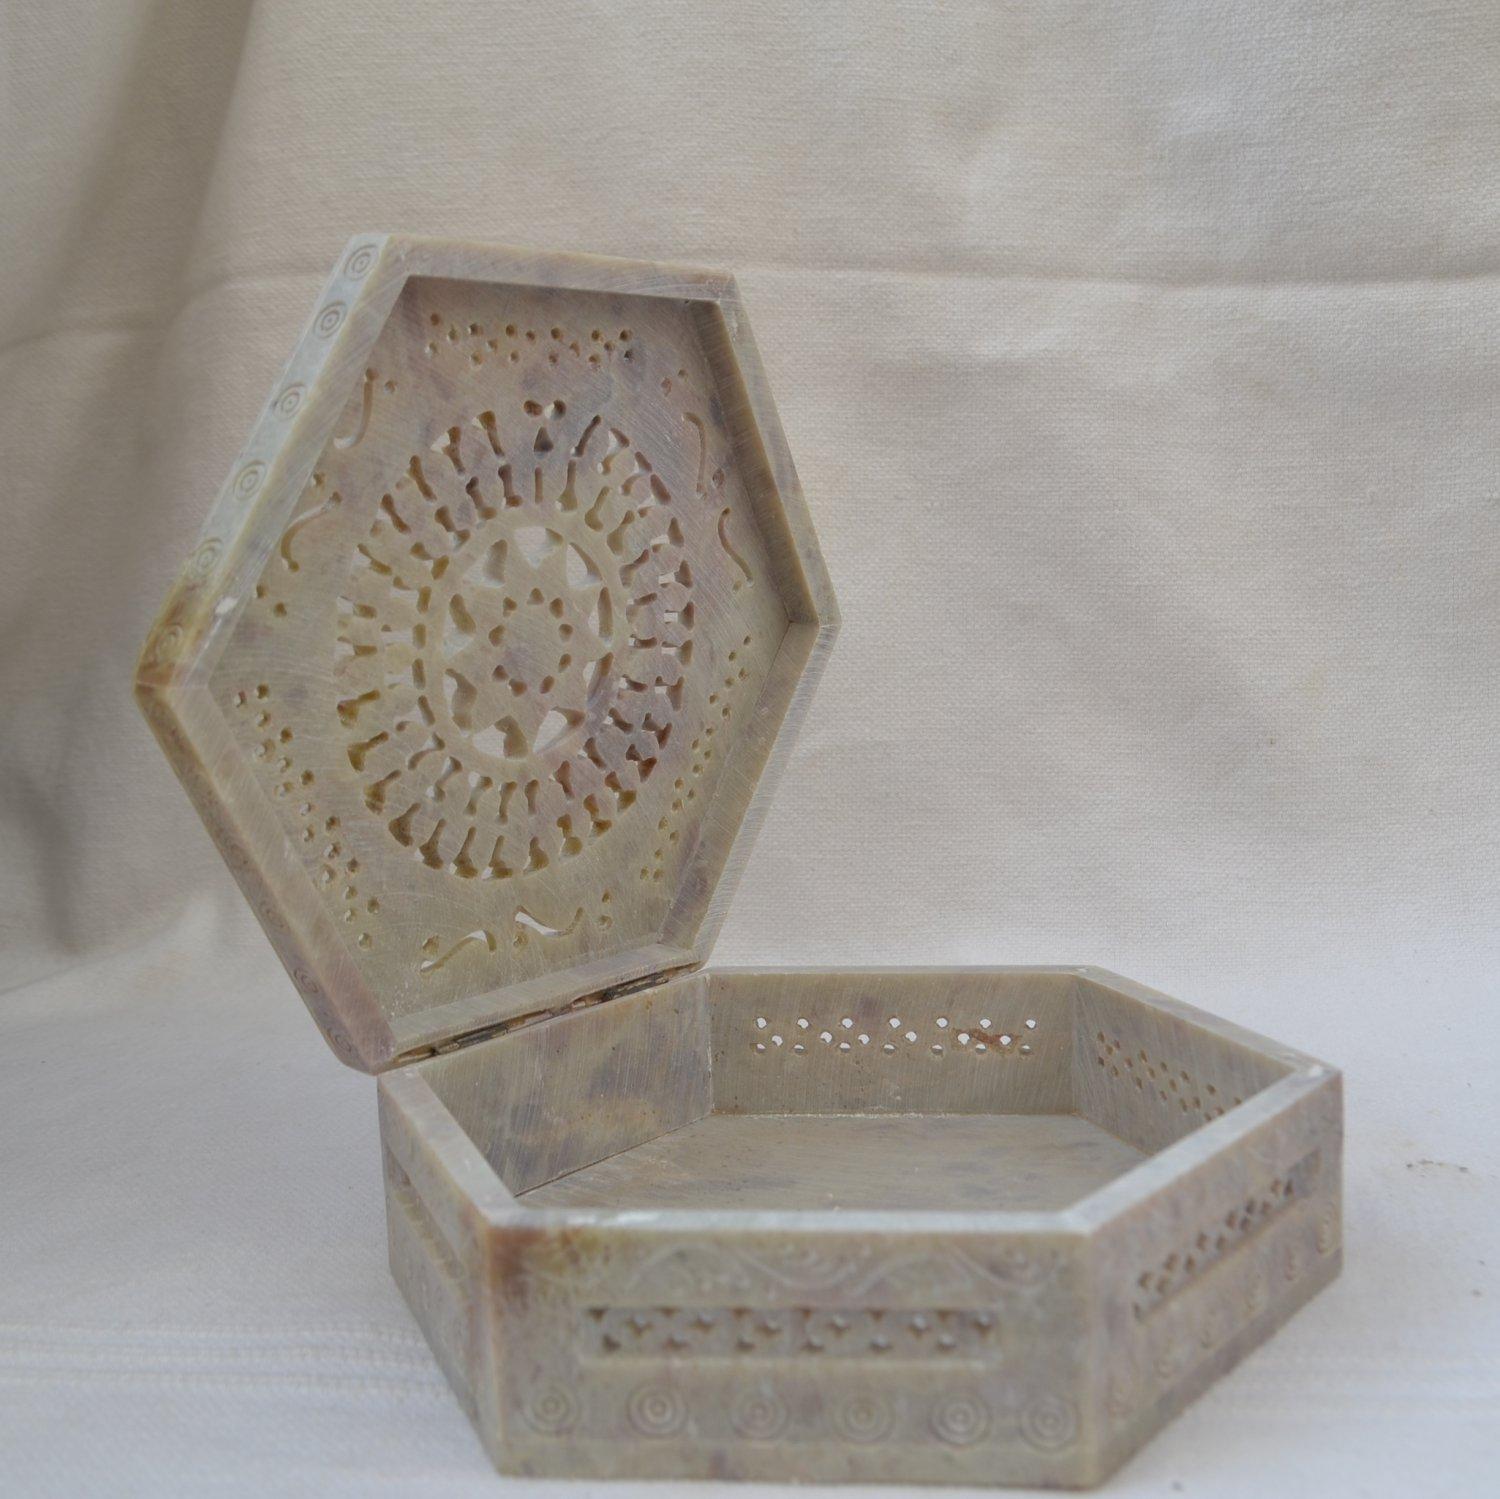 Marble Jewelry Trinket Box Floral Design Carving Handmade For Home Decor gifts.